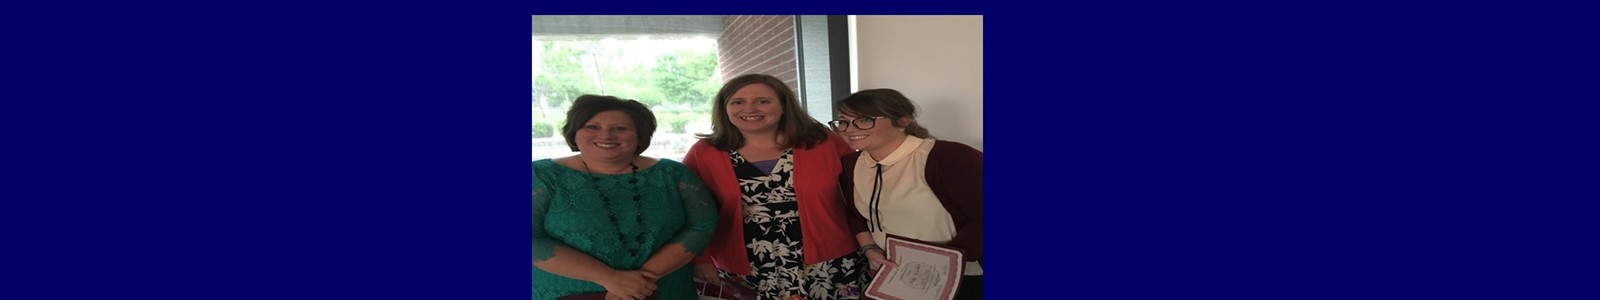 CONGRATULATIONS TO OUR CAMPBELLSVILLE UNIVERSITY EXCELLENCE IN TEACHING AWARD RECEPIENTS!